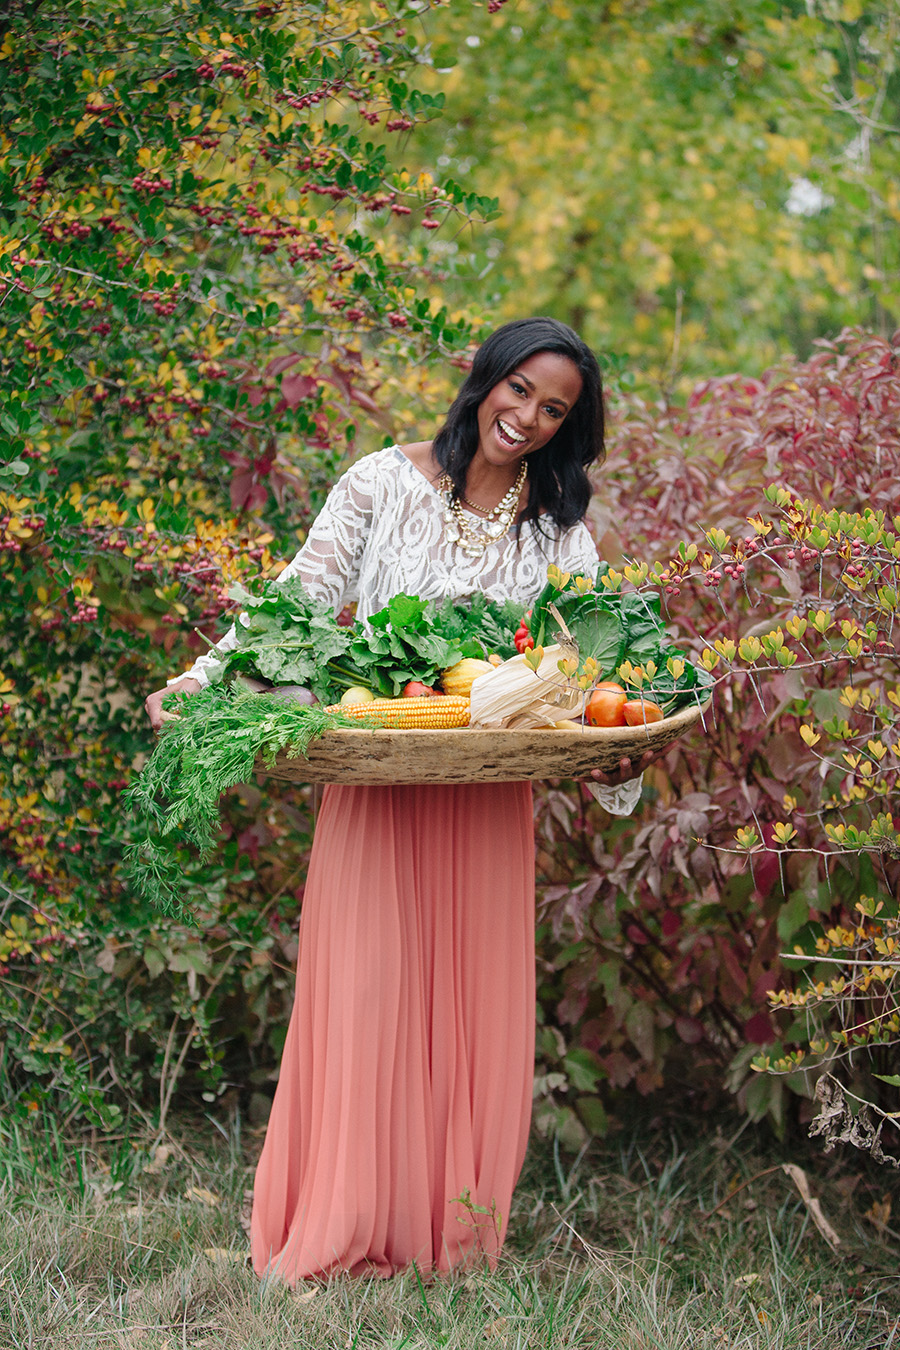 Another shoot I get asked about often. This was justa few shrubs in the median of a parking lot on the industrial side ofLongmont. The vibrant colors of the foliage echoed the colors of the produce in her basket, and made her coral skirt stand out. I'm standing on the curb.